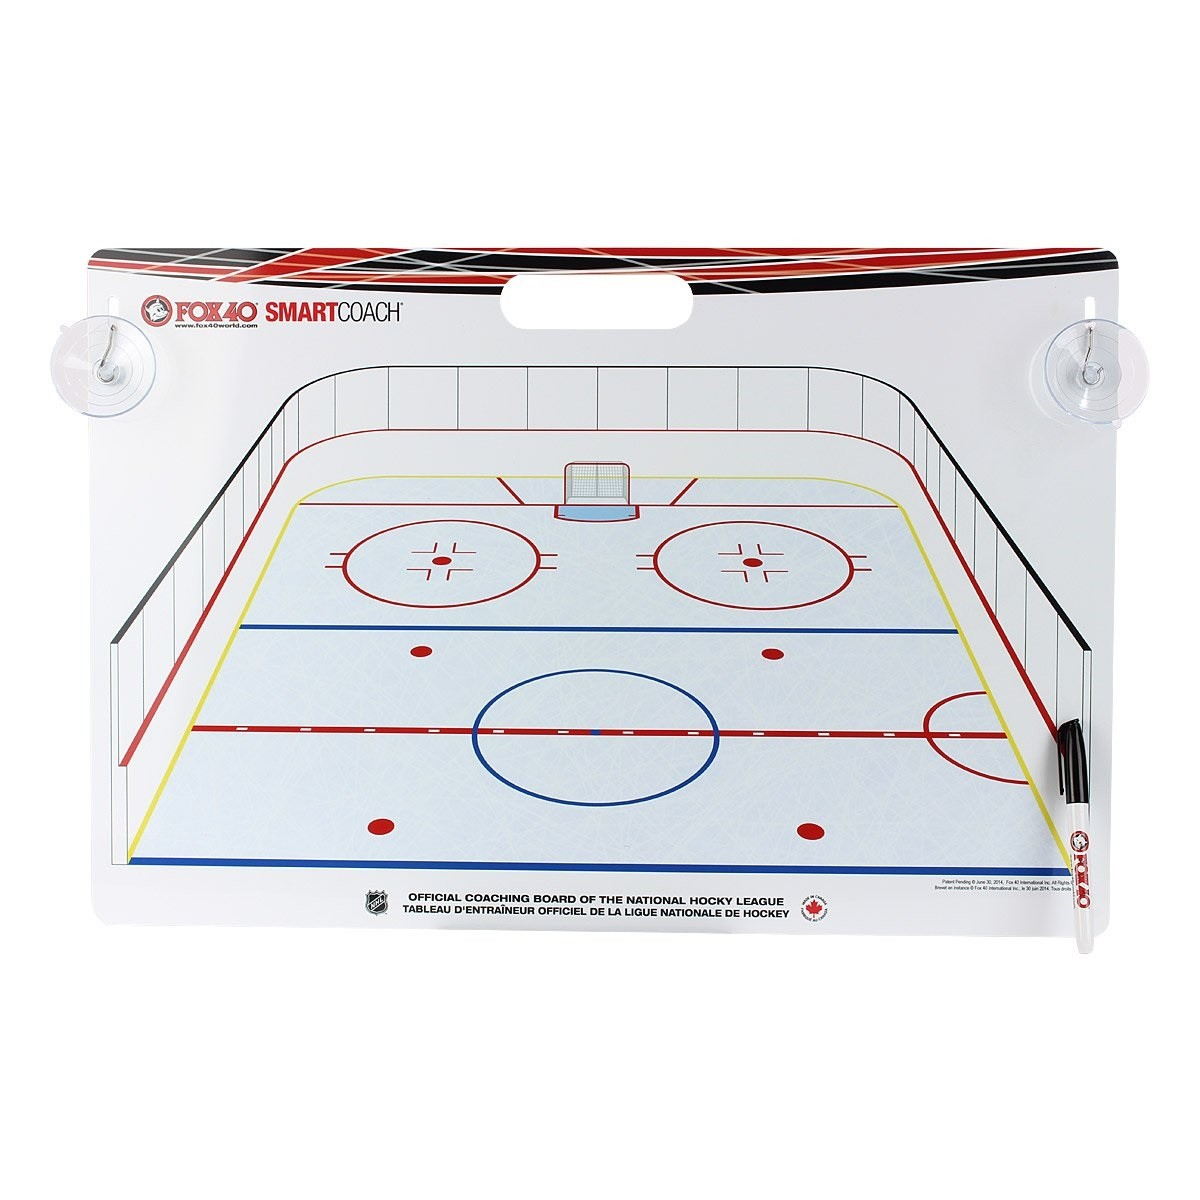 FOX 40 Deluxe Pro Clipboard + Rigid Kit International Hockey Coaching Board Hokeja Taktikas Dēlis